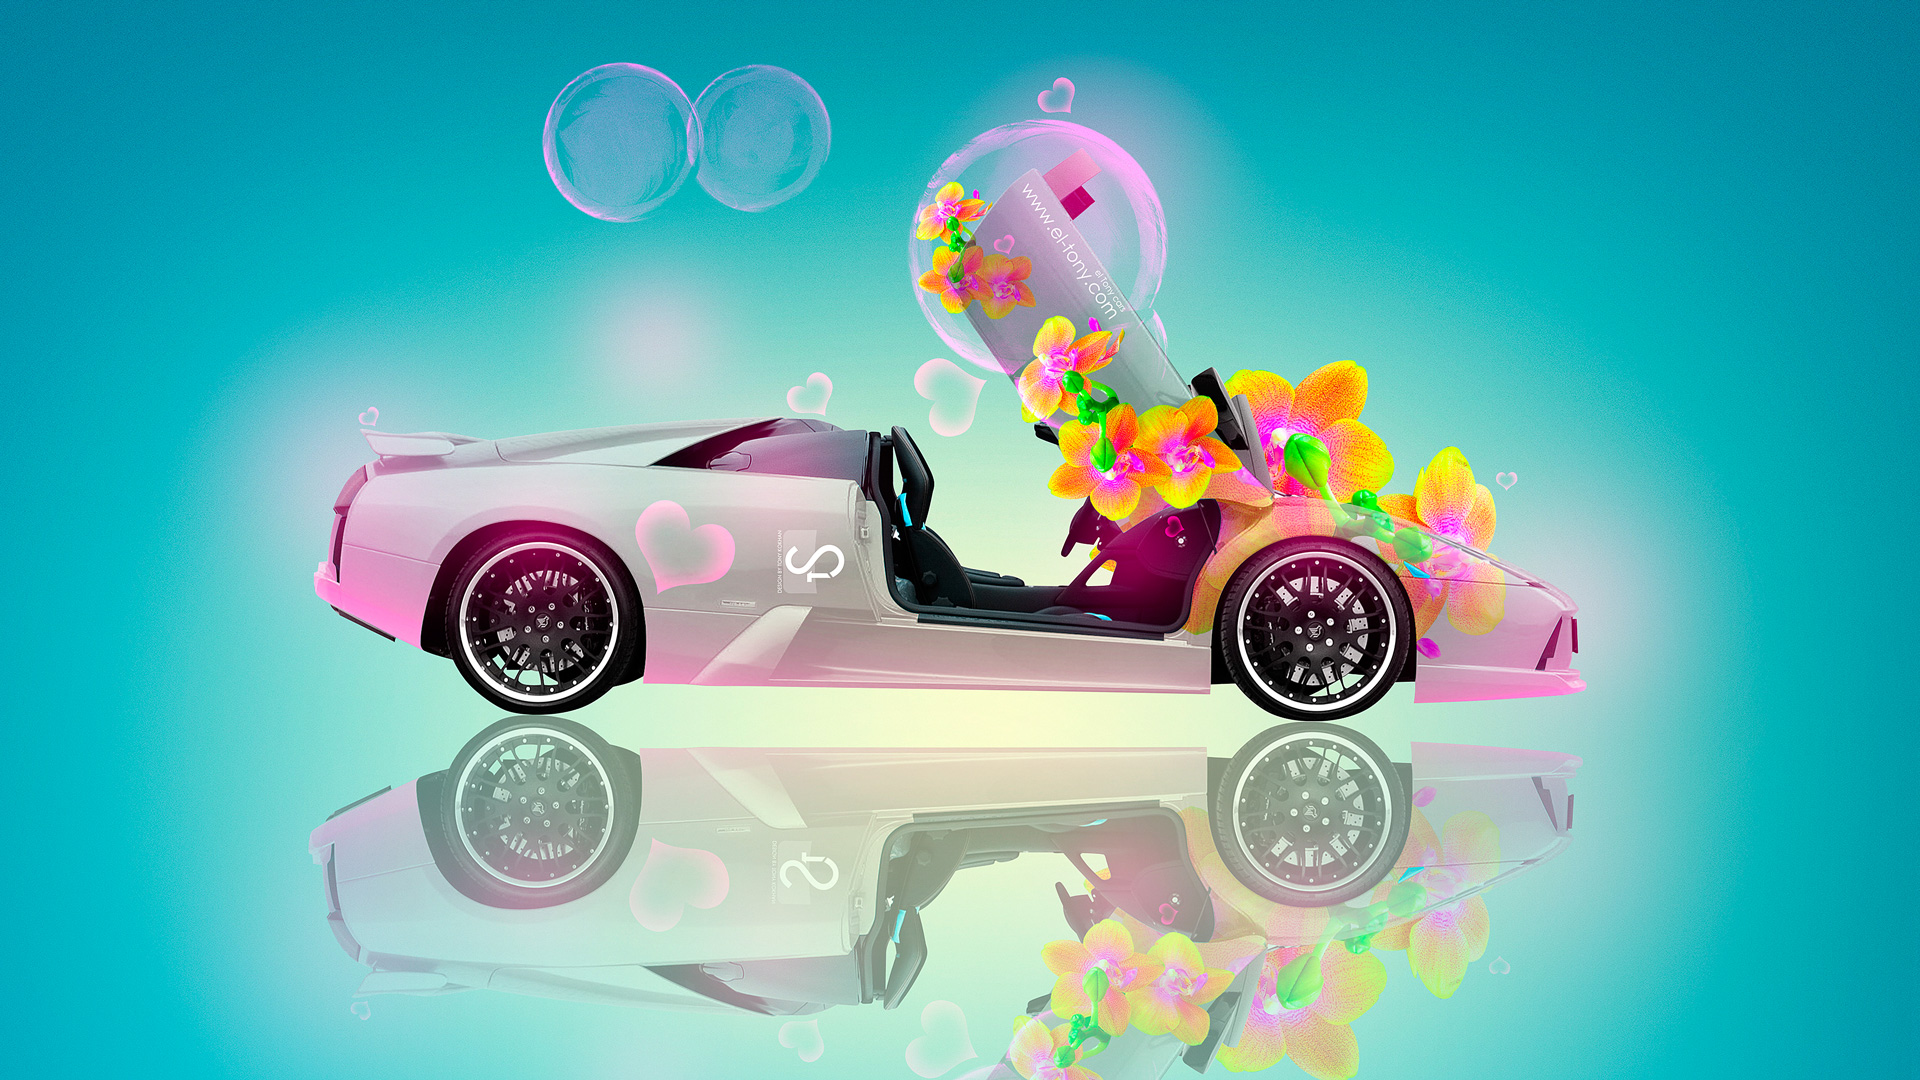 Lamborghini Murcielago Fantasy Flowers Car 2013 HD Wallpapers